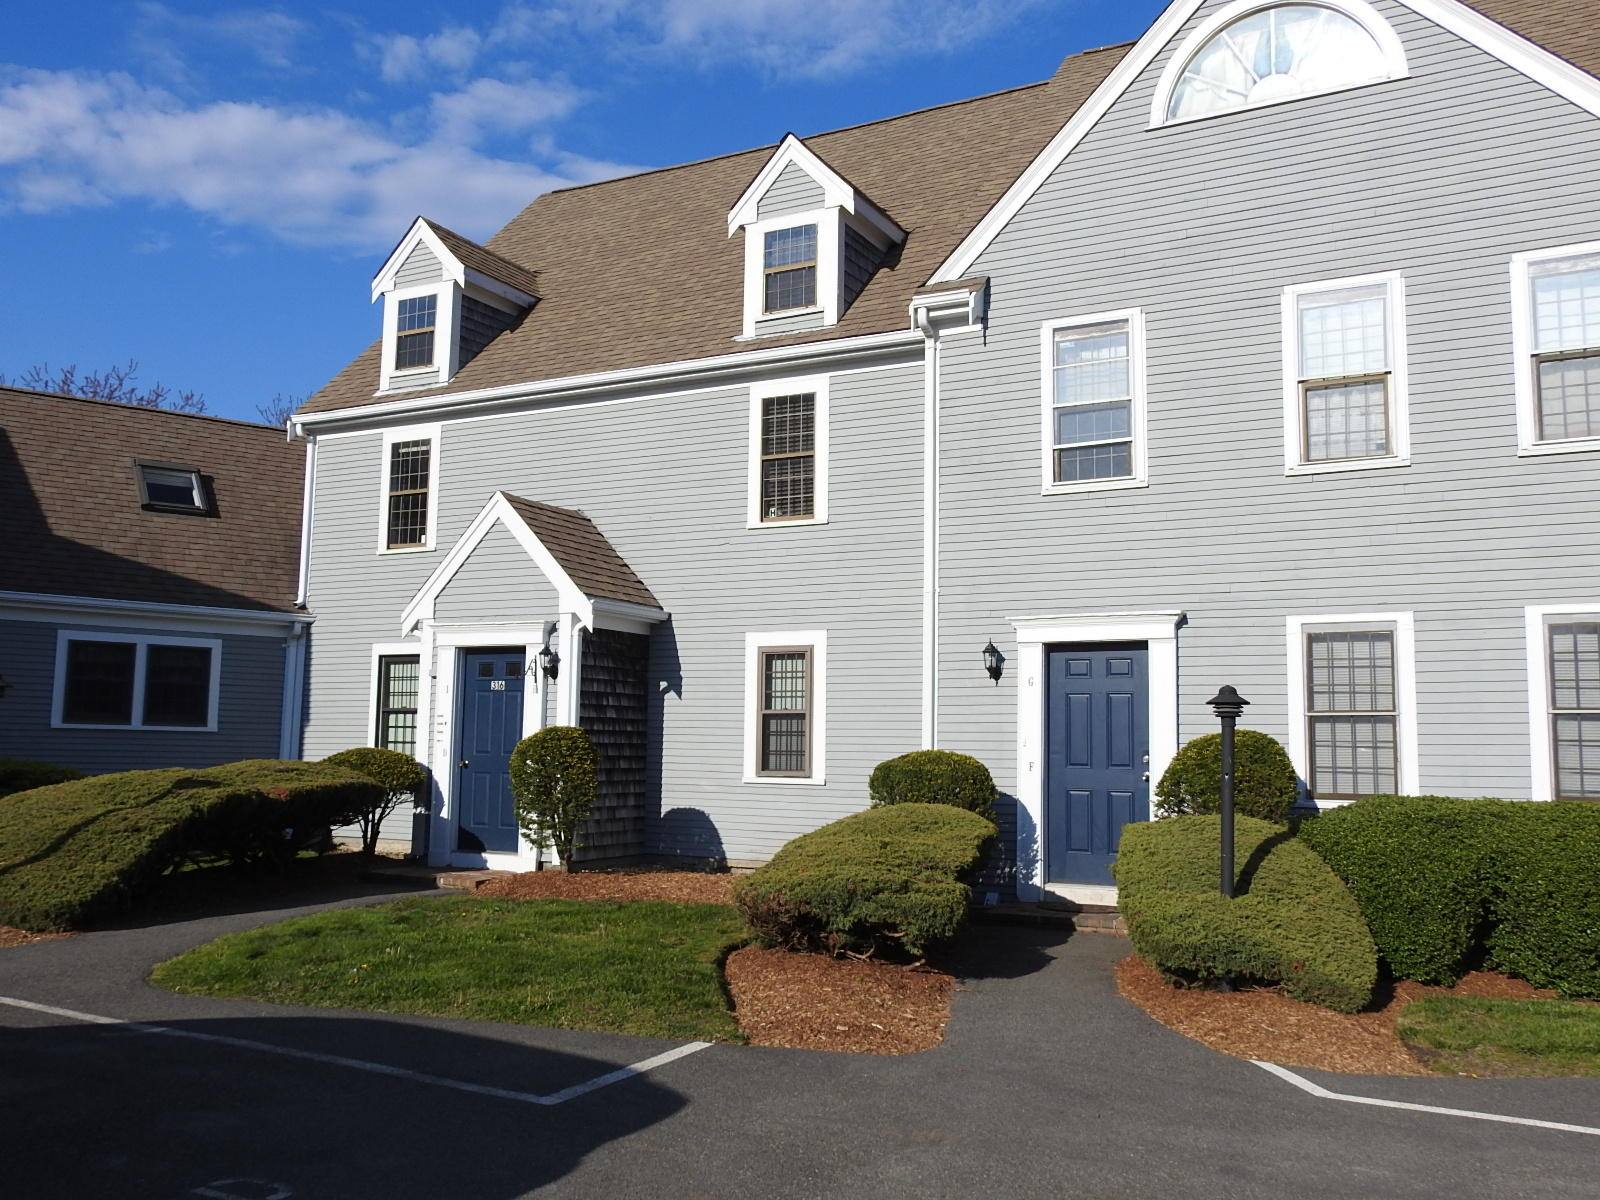 316 Sea Street, #I, Barnstable, MA 02601, Hyannis | Jack Conway